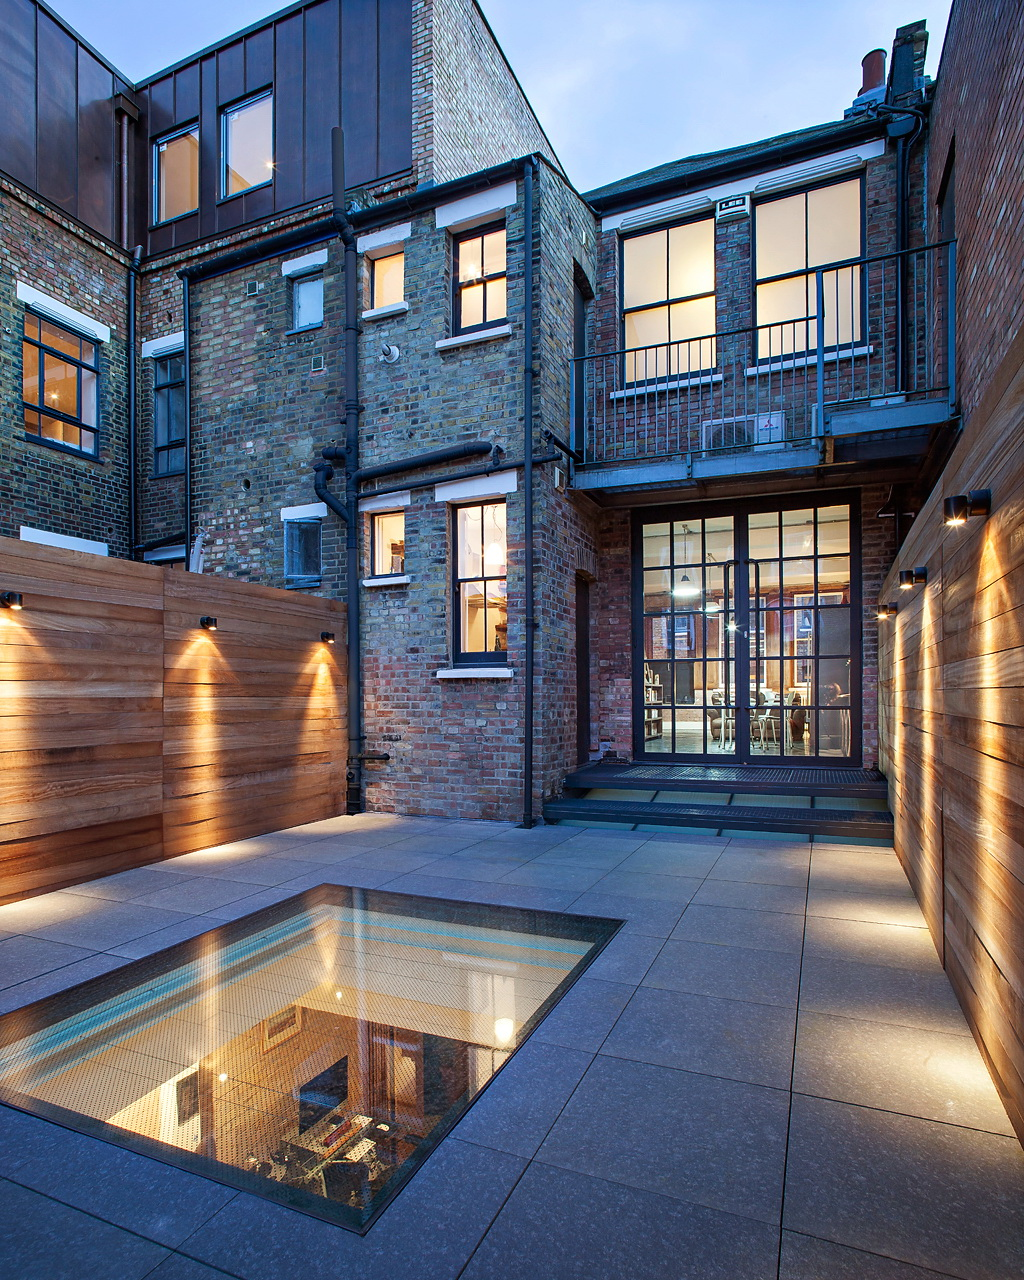 Chris-Dyson-Architects-Shoreditch-Warehouse-Conversion-12